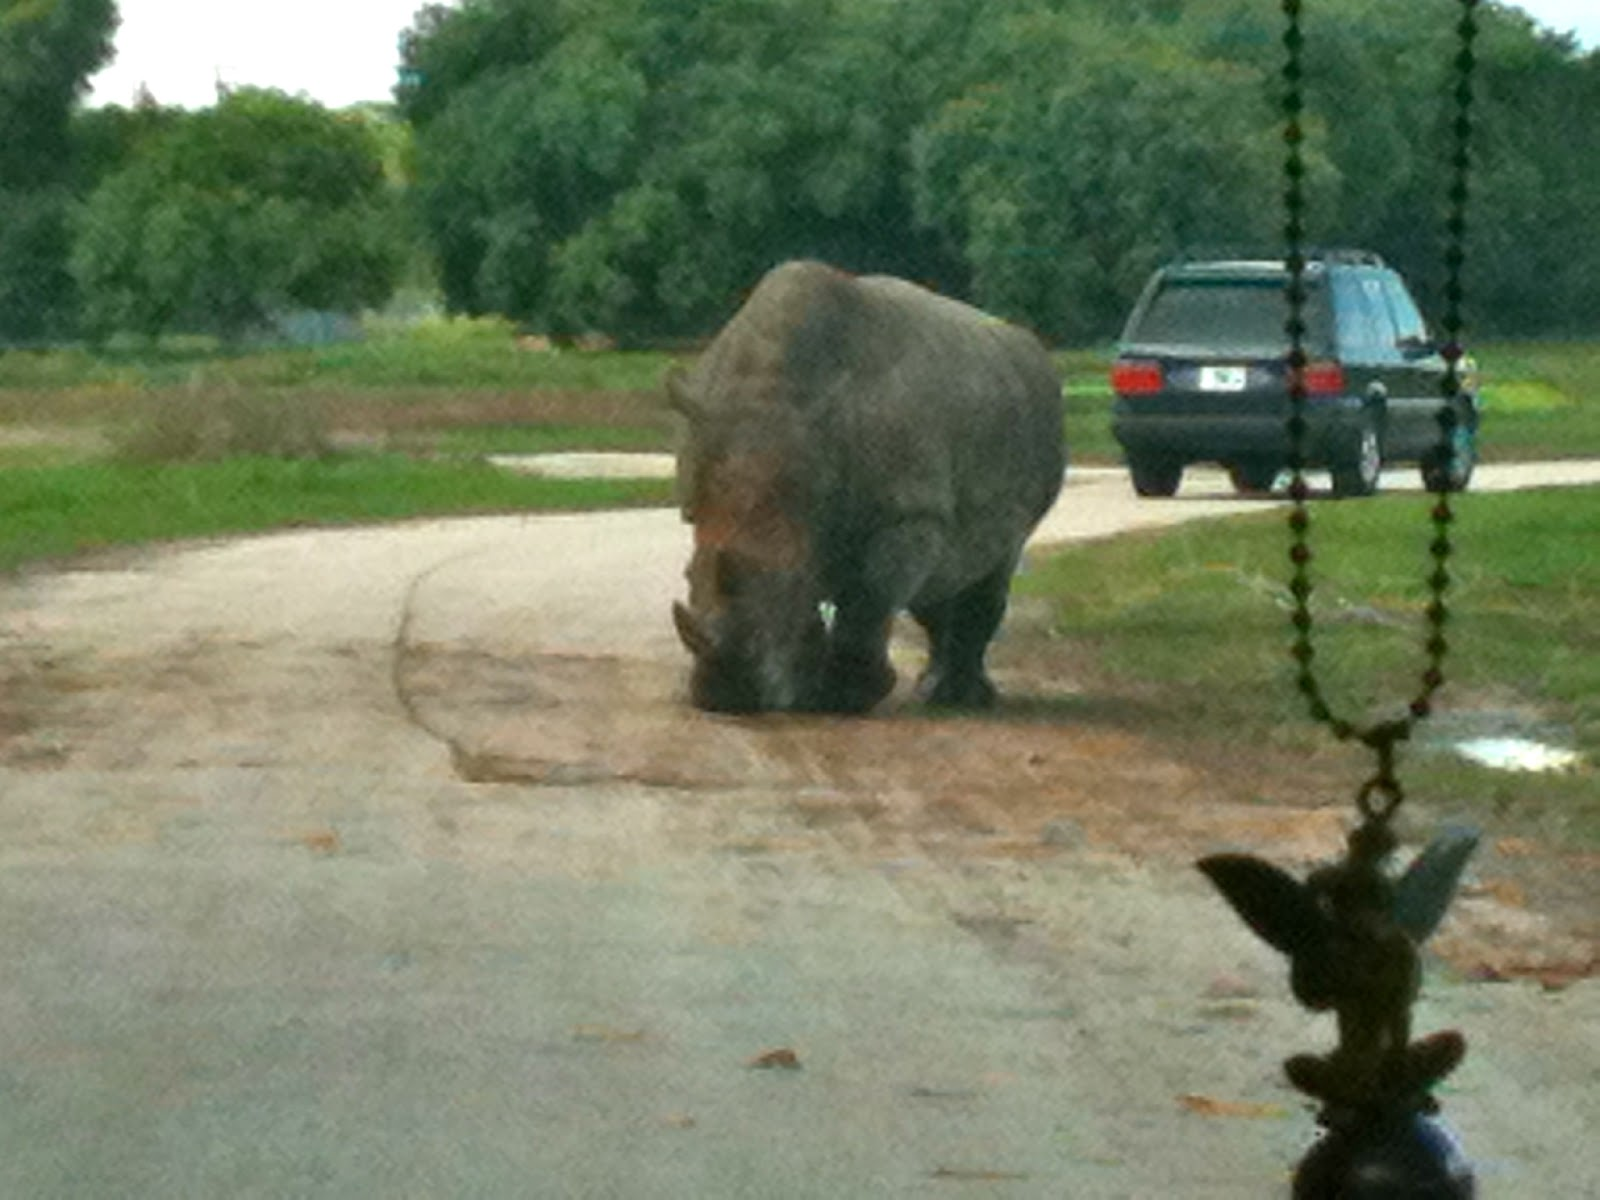 Rhino in the Road at Lion Country Safari, Loxahatchee, FL - ouroutdoortravels.blogspot.com